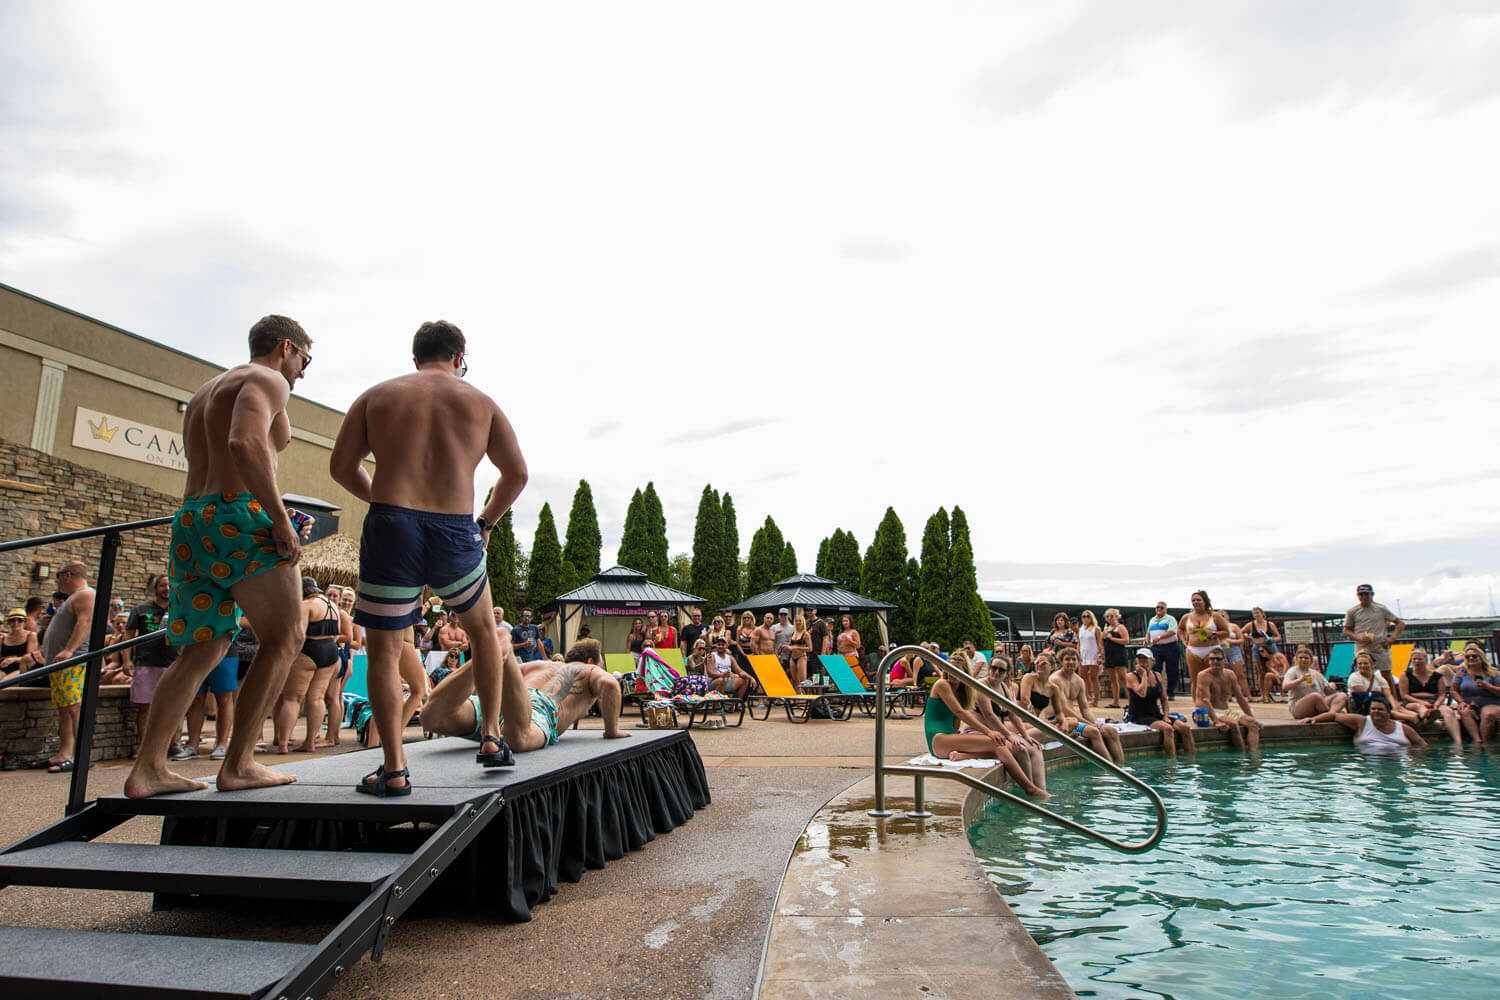 a crowd enjoys the pool at camden on the lake resort on lake of the ozarks